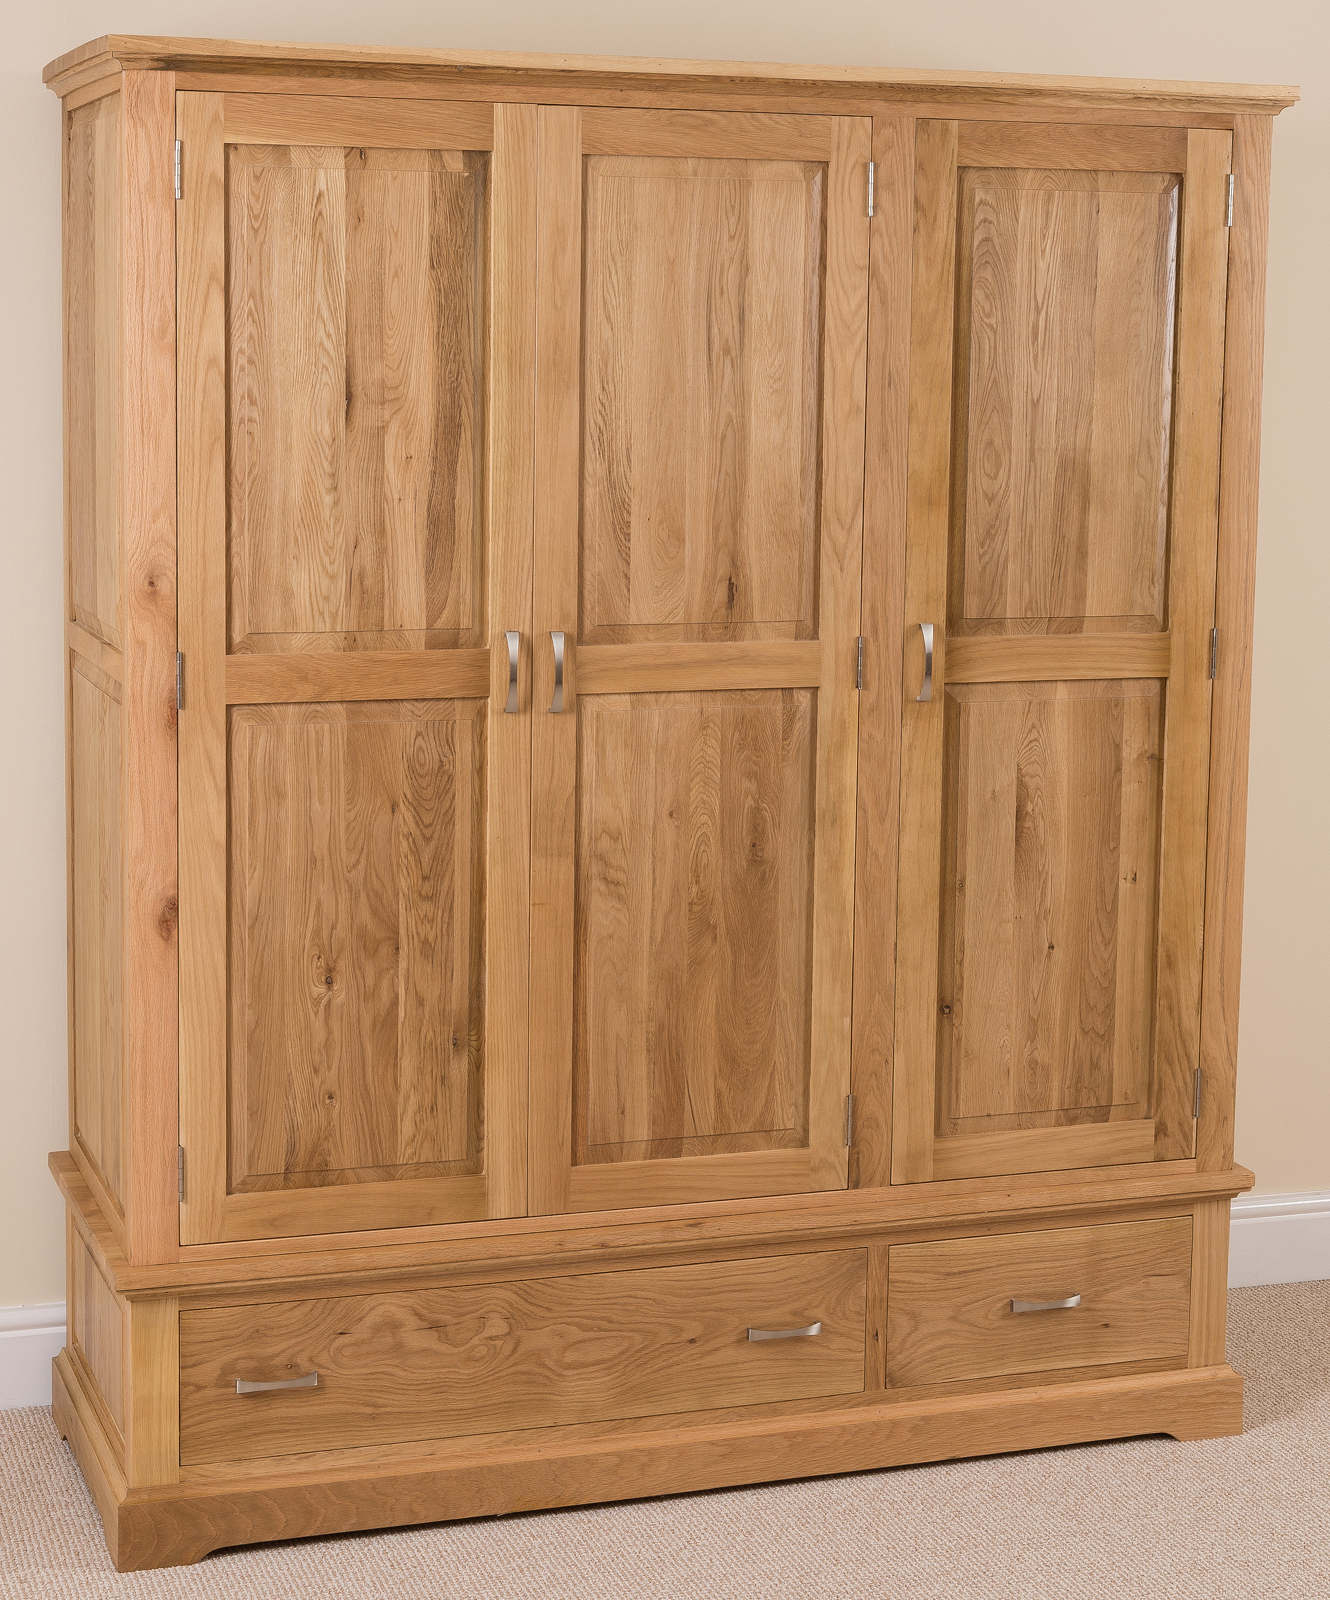 aspen solid oak wood triple wardrobe with 2 drawers. Black Bedroom Furniture Sets. Home Design Ideas